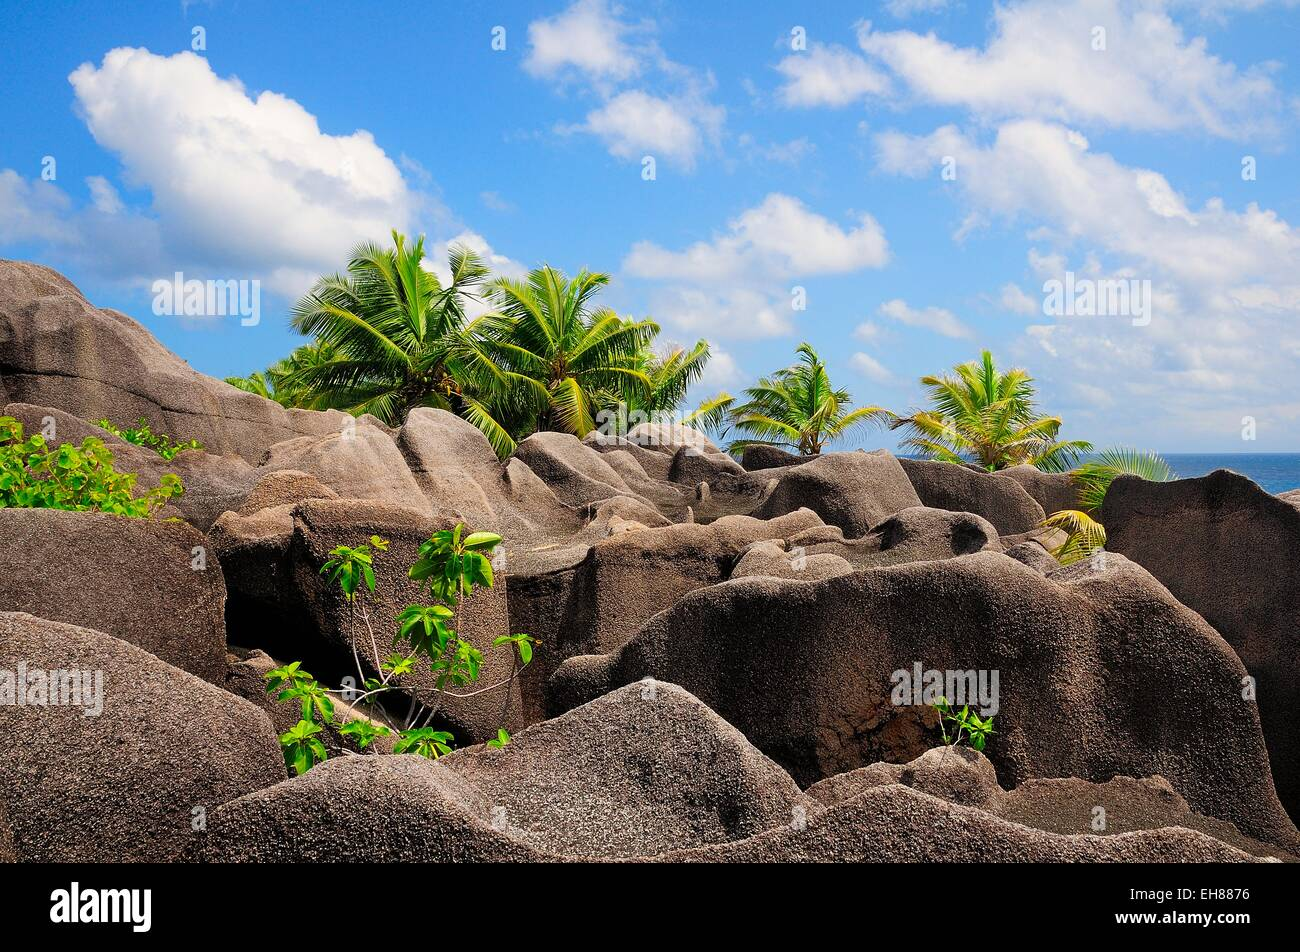 Palm trees growing between the granites rocks, La Digue Island, La Digue and Inner Islands, Seychelles - Stock Image